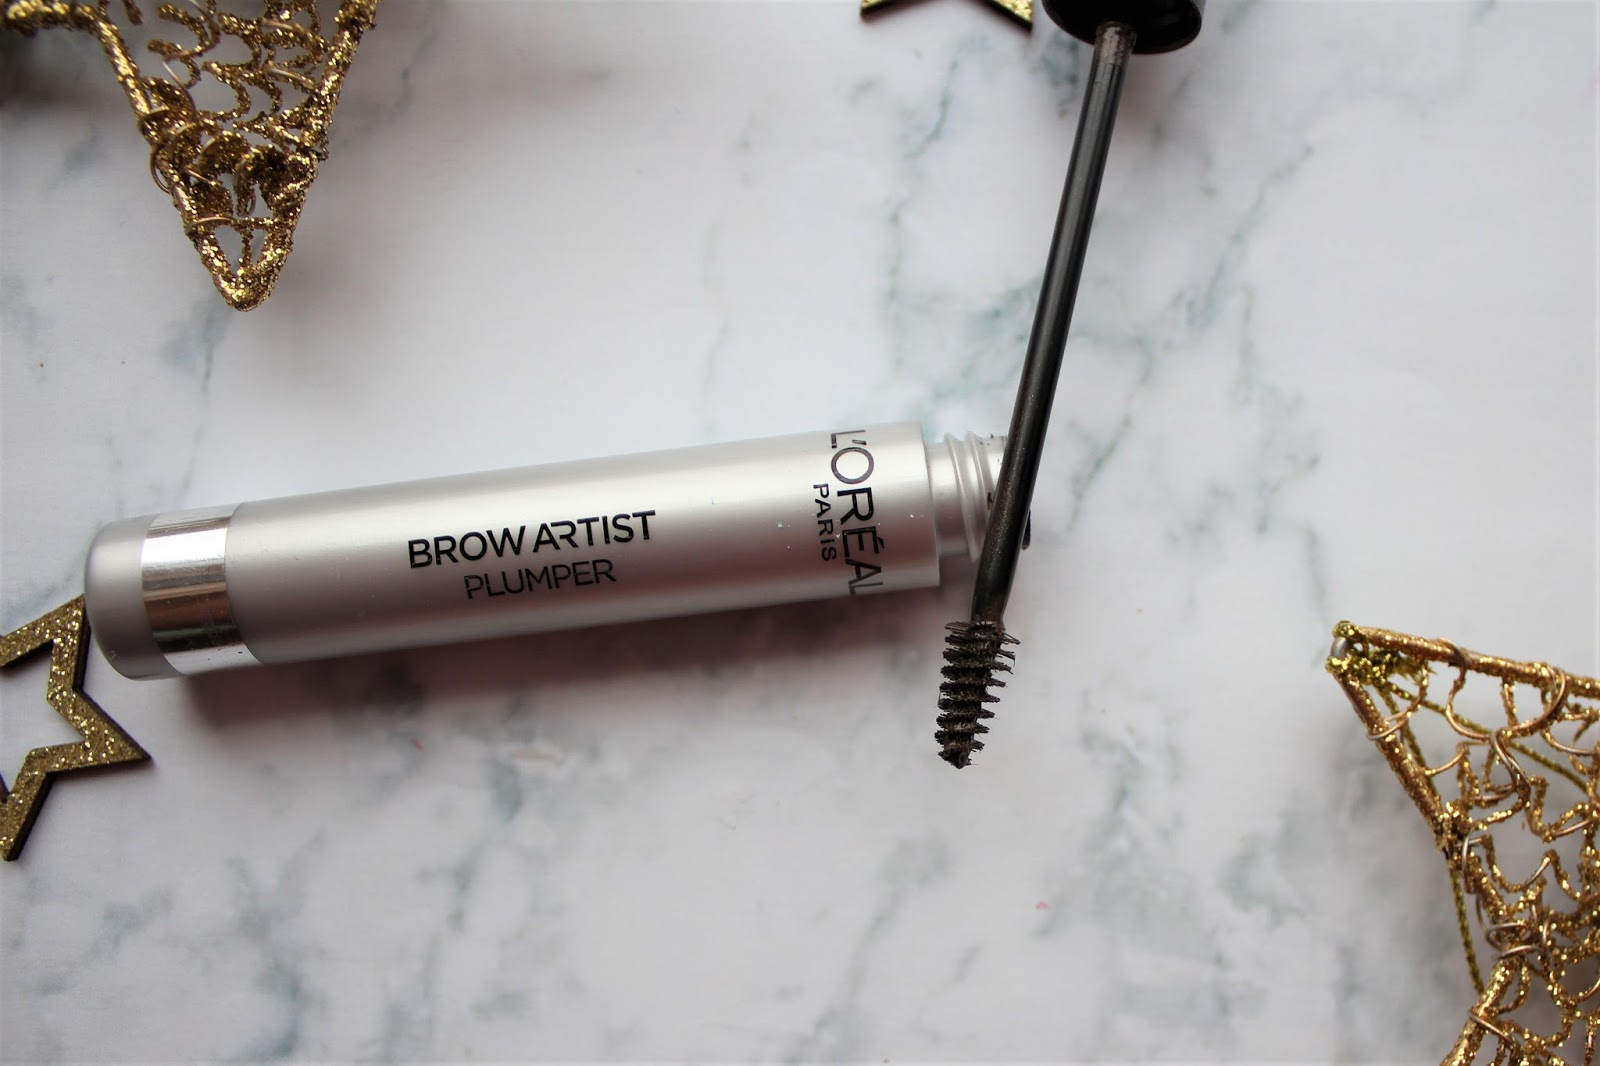 l'oreal brow artist plumper review